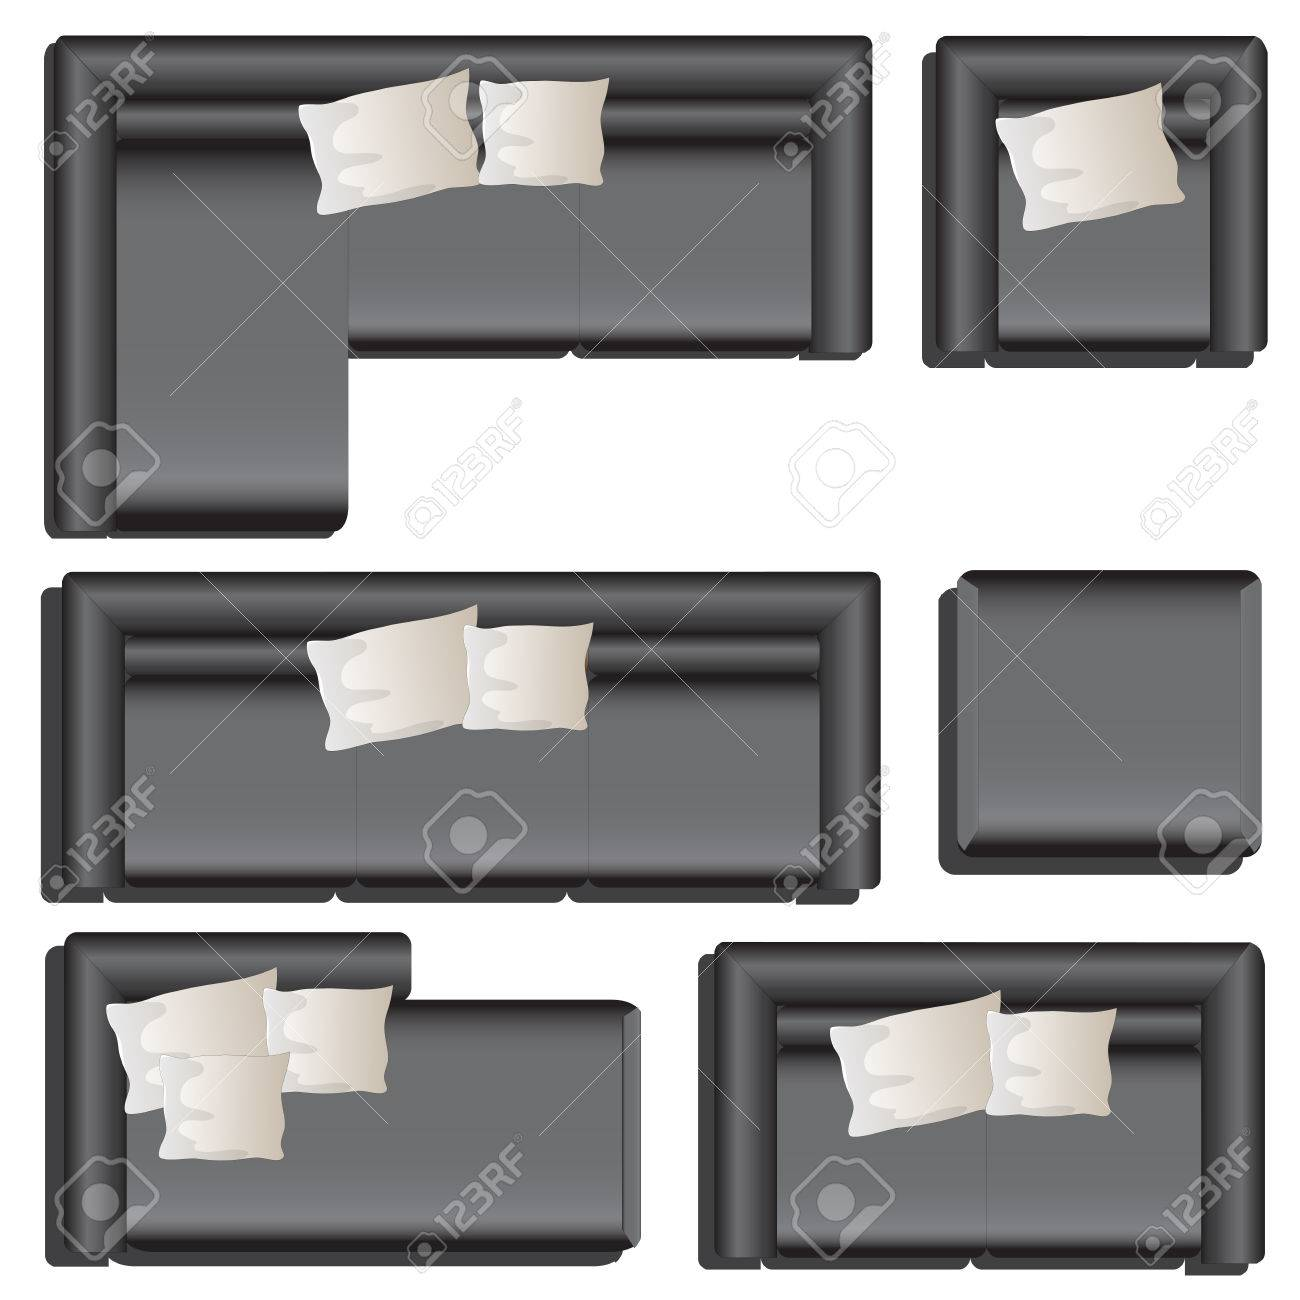 sofa top view vector  Furniture Top View Set 33 For Interior ,vector Illustration ...